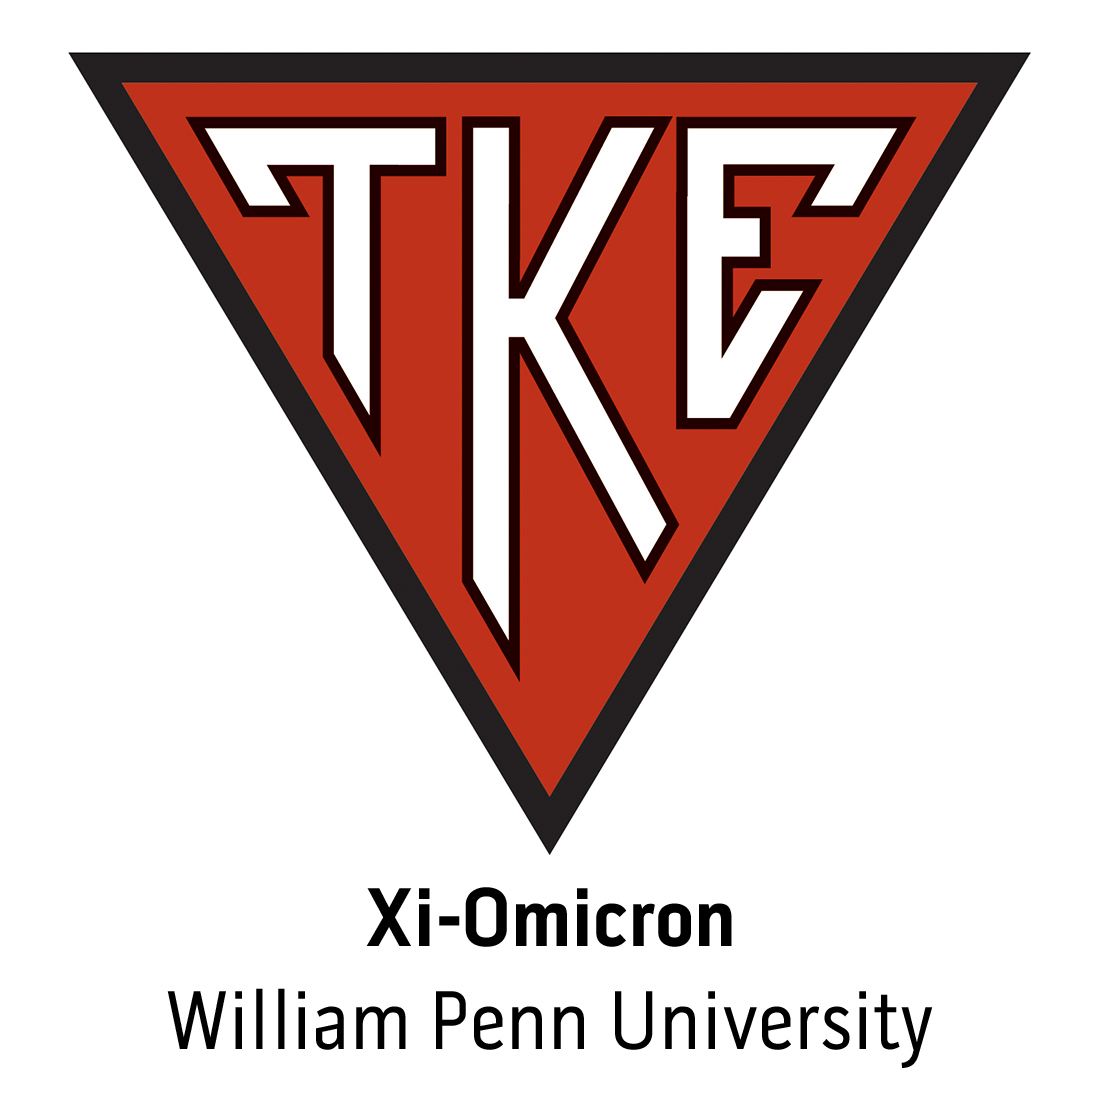 Xi-Omicron Chapter at William Penn University